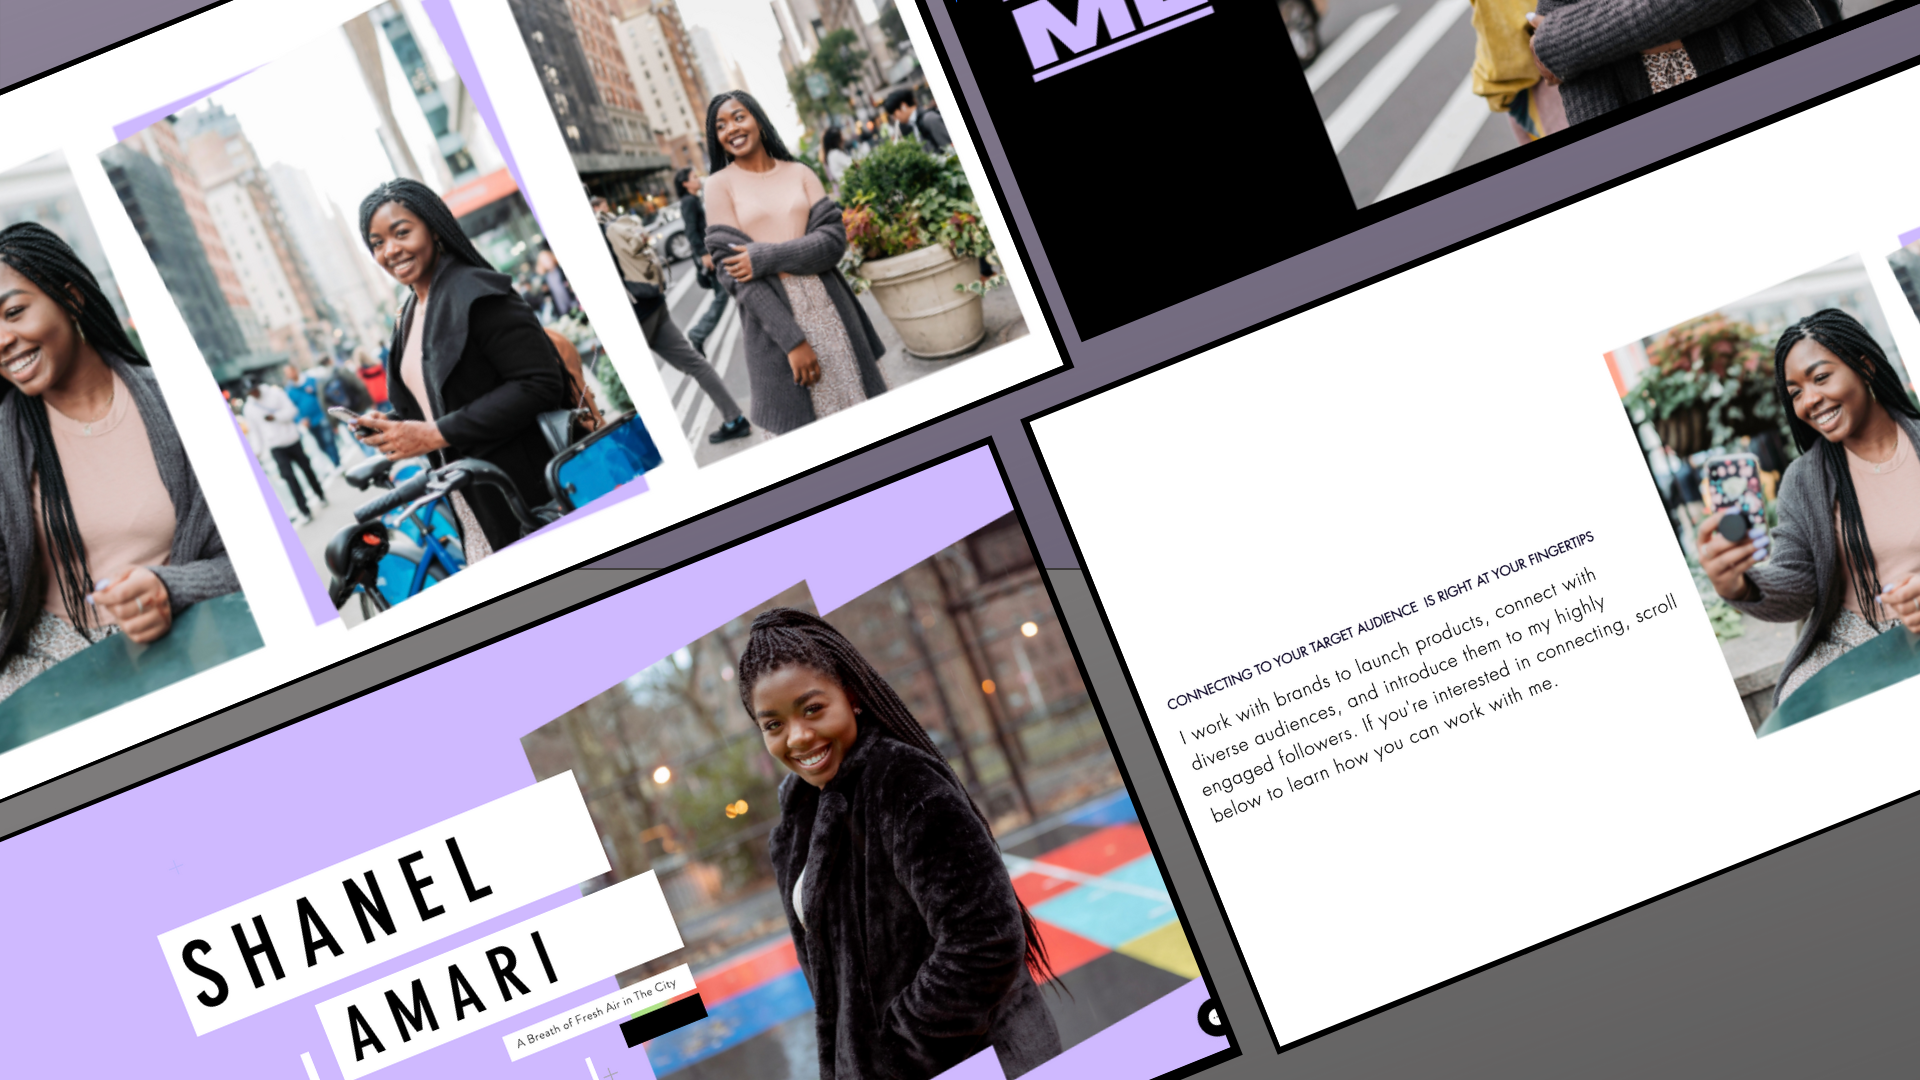 shanelamari A website and strategy update for Influencer focus...